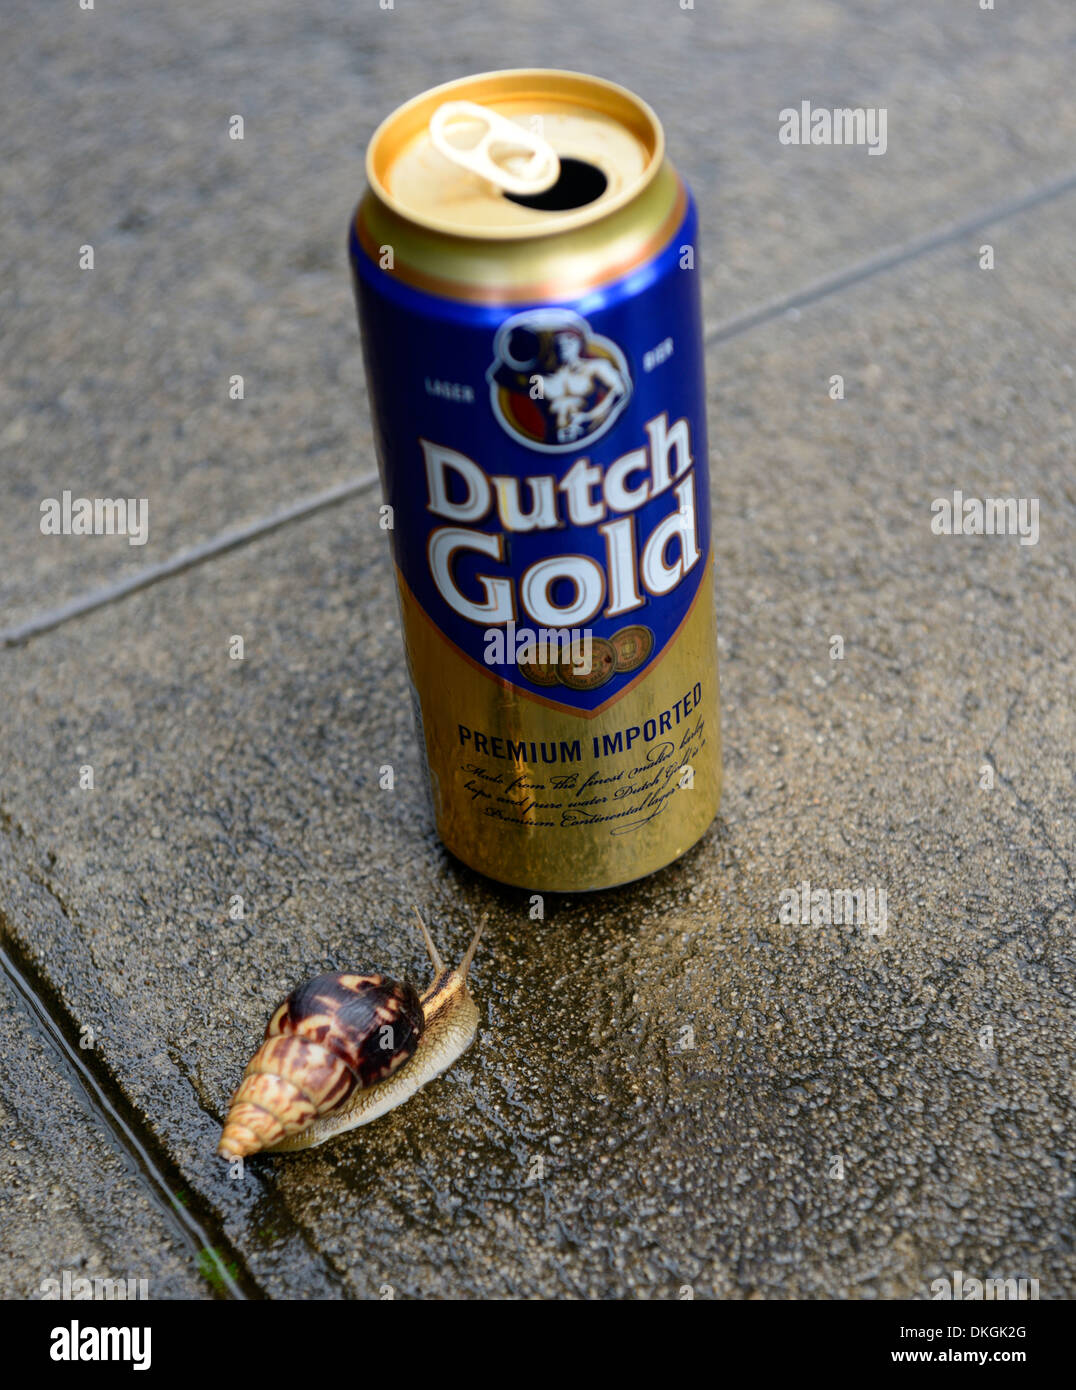 snail glide gliding towards alcohol can dutch gold cheap low cost beer - Stock Image